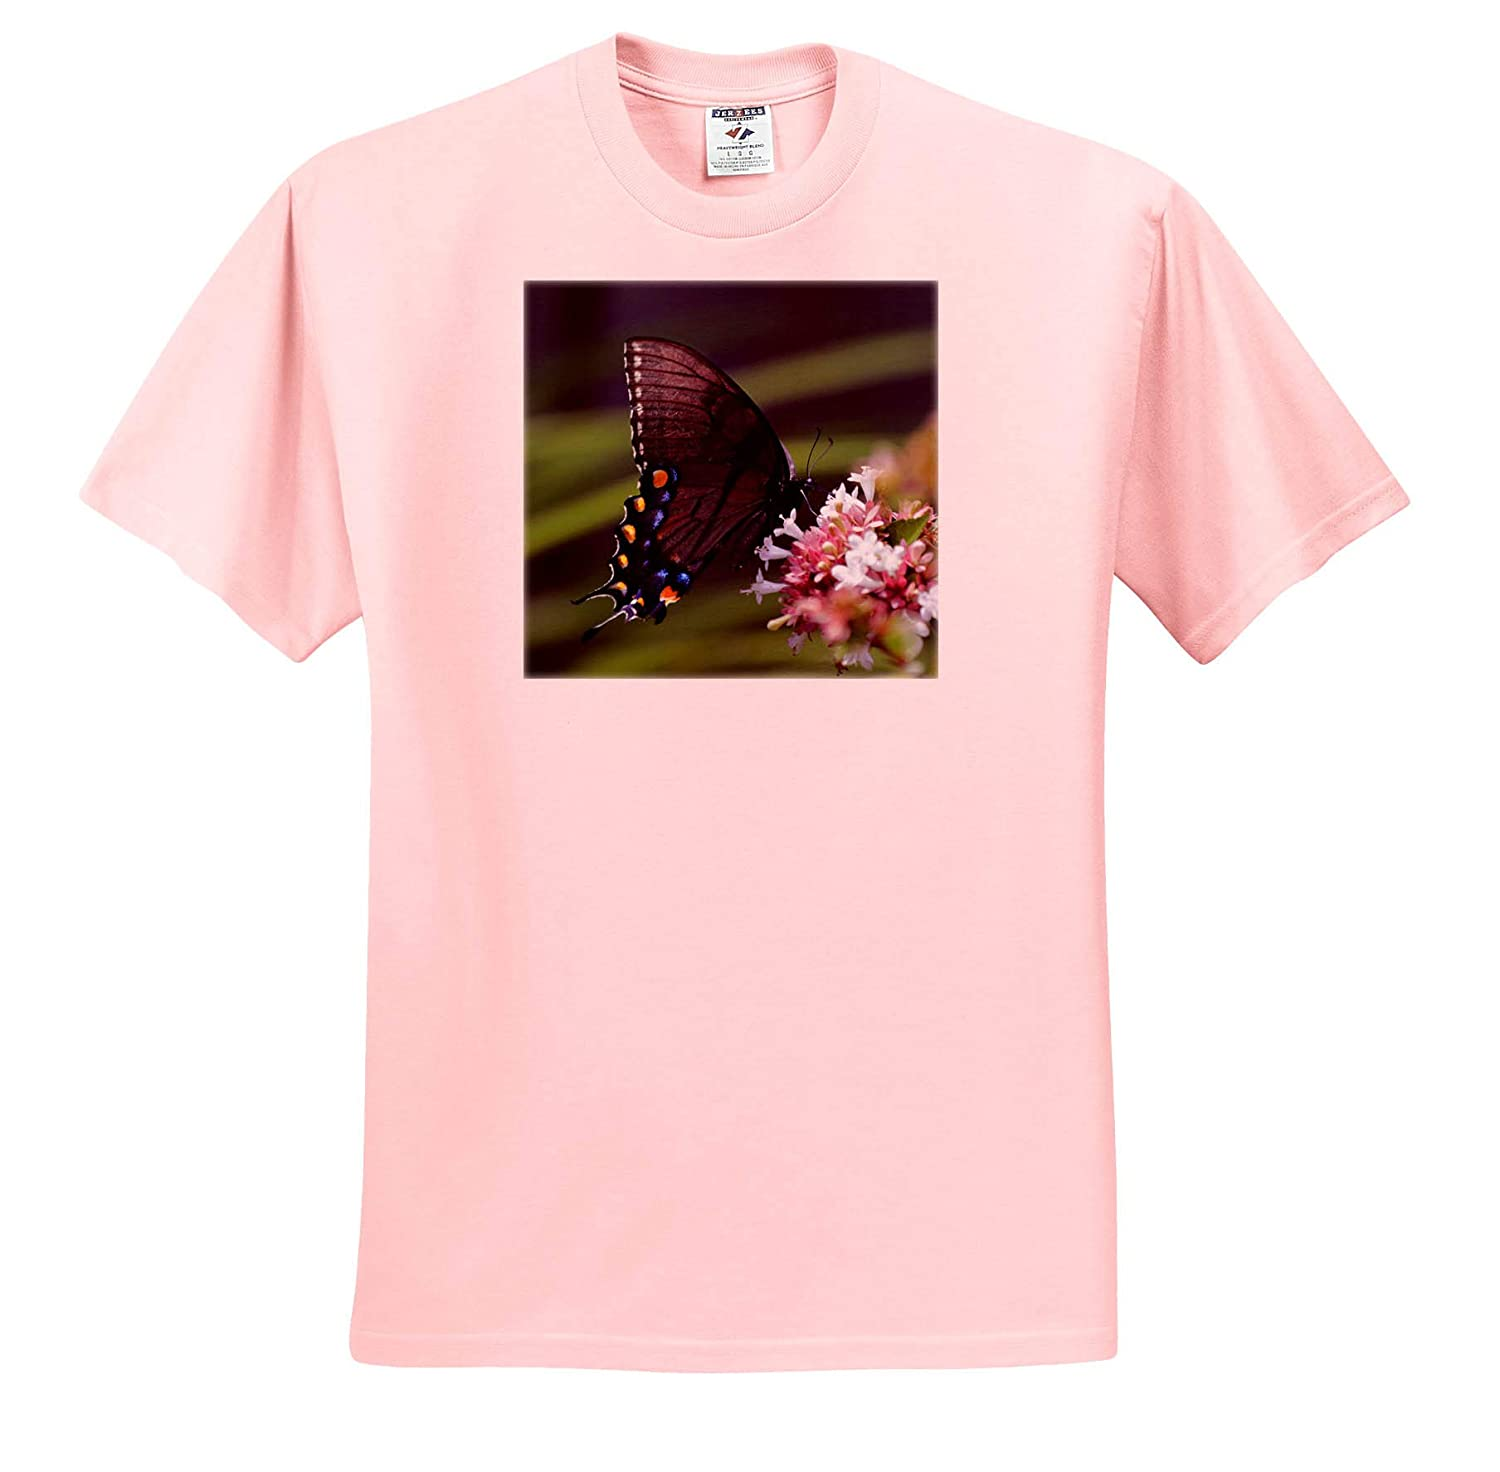 - T-Shirts 3dRose Stamp City Nature Photo of a Black Swallowtail Butterfly Pollinating an abelia Flower